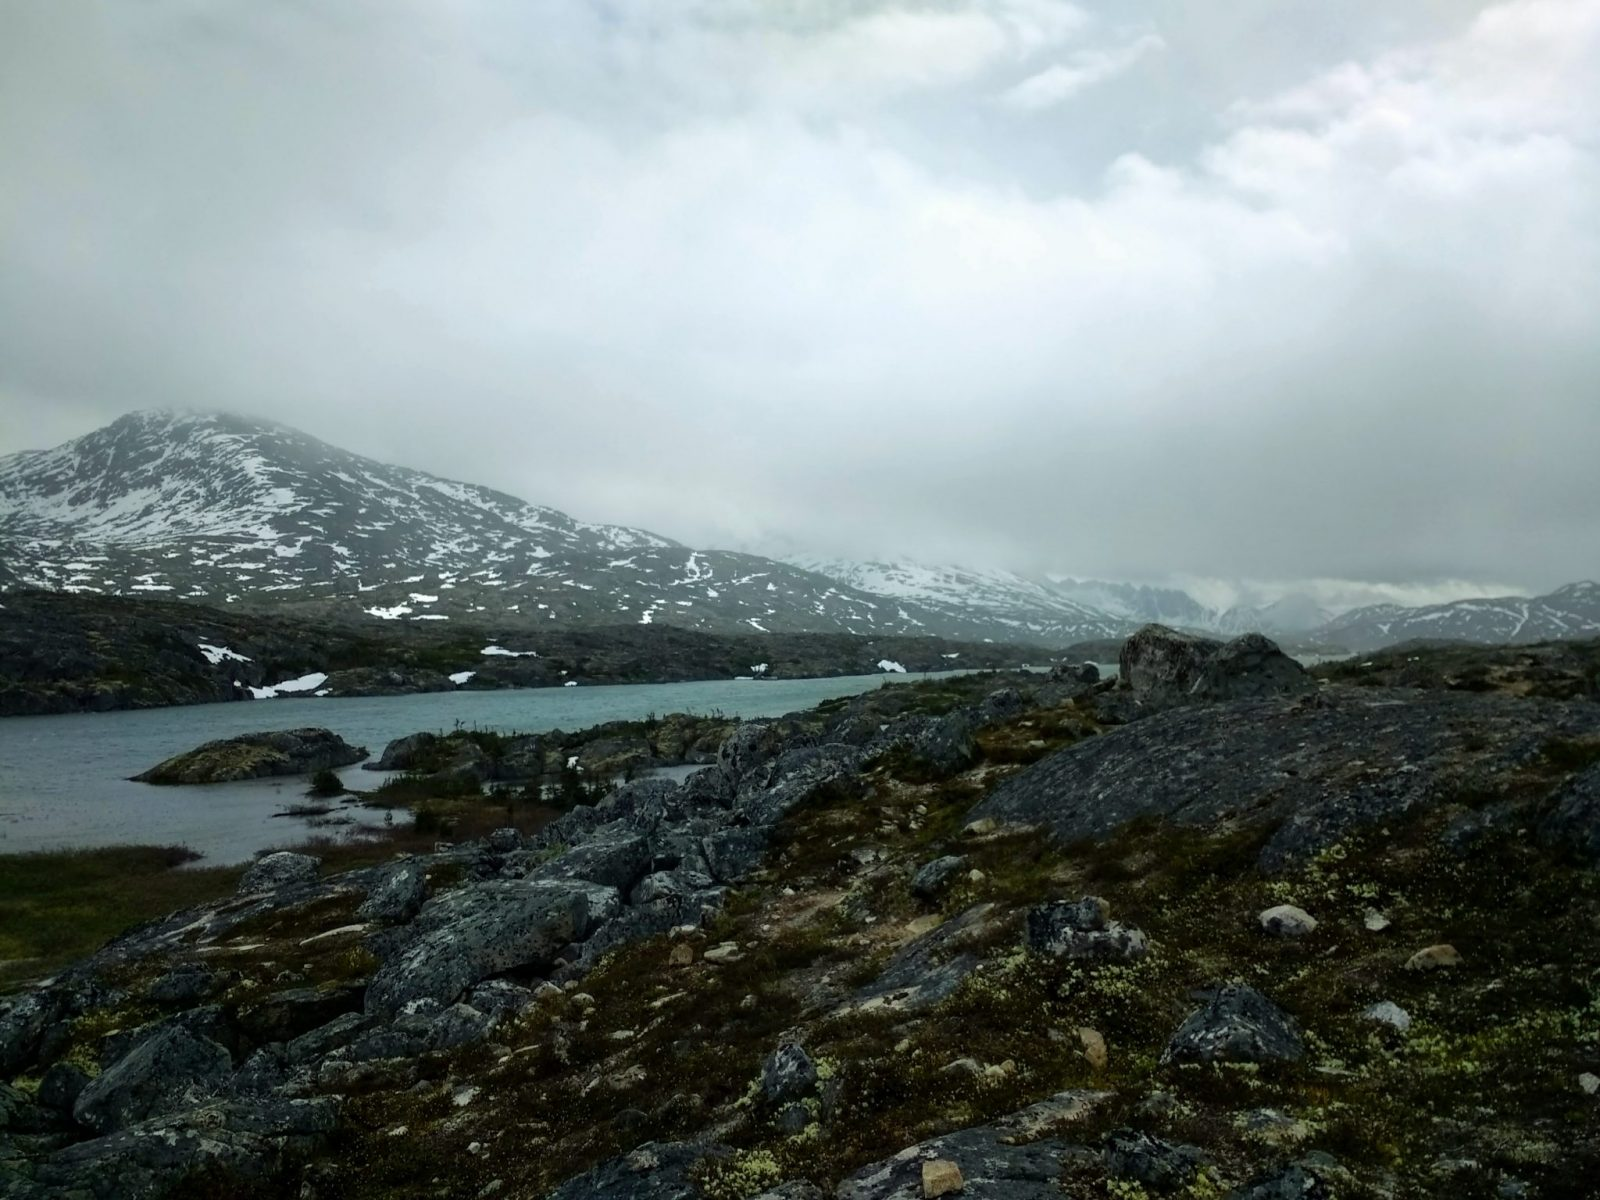 Rocky edges of a lake in a valley holding an alpine lake and surrounded by snowy moutnains on a foggy day